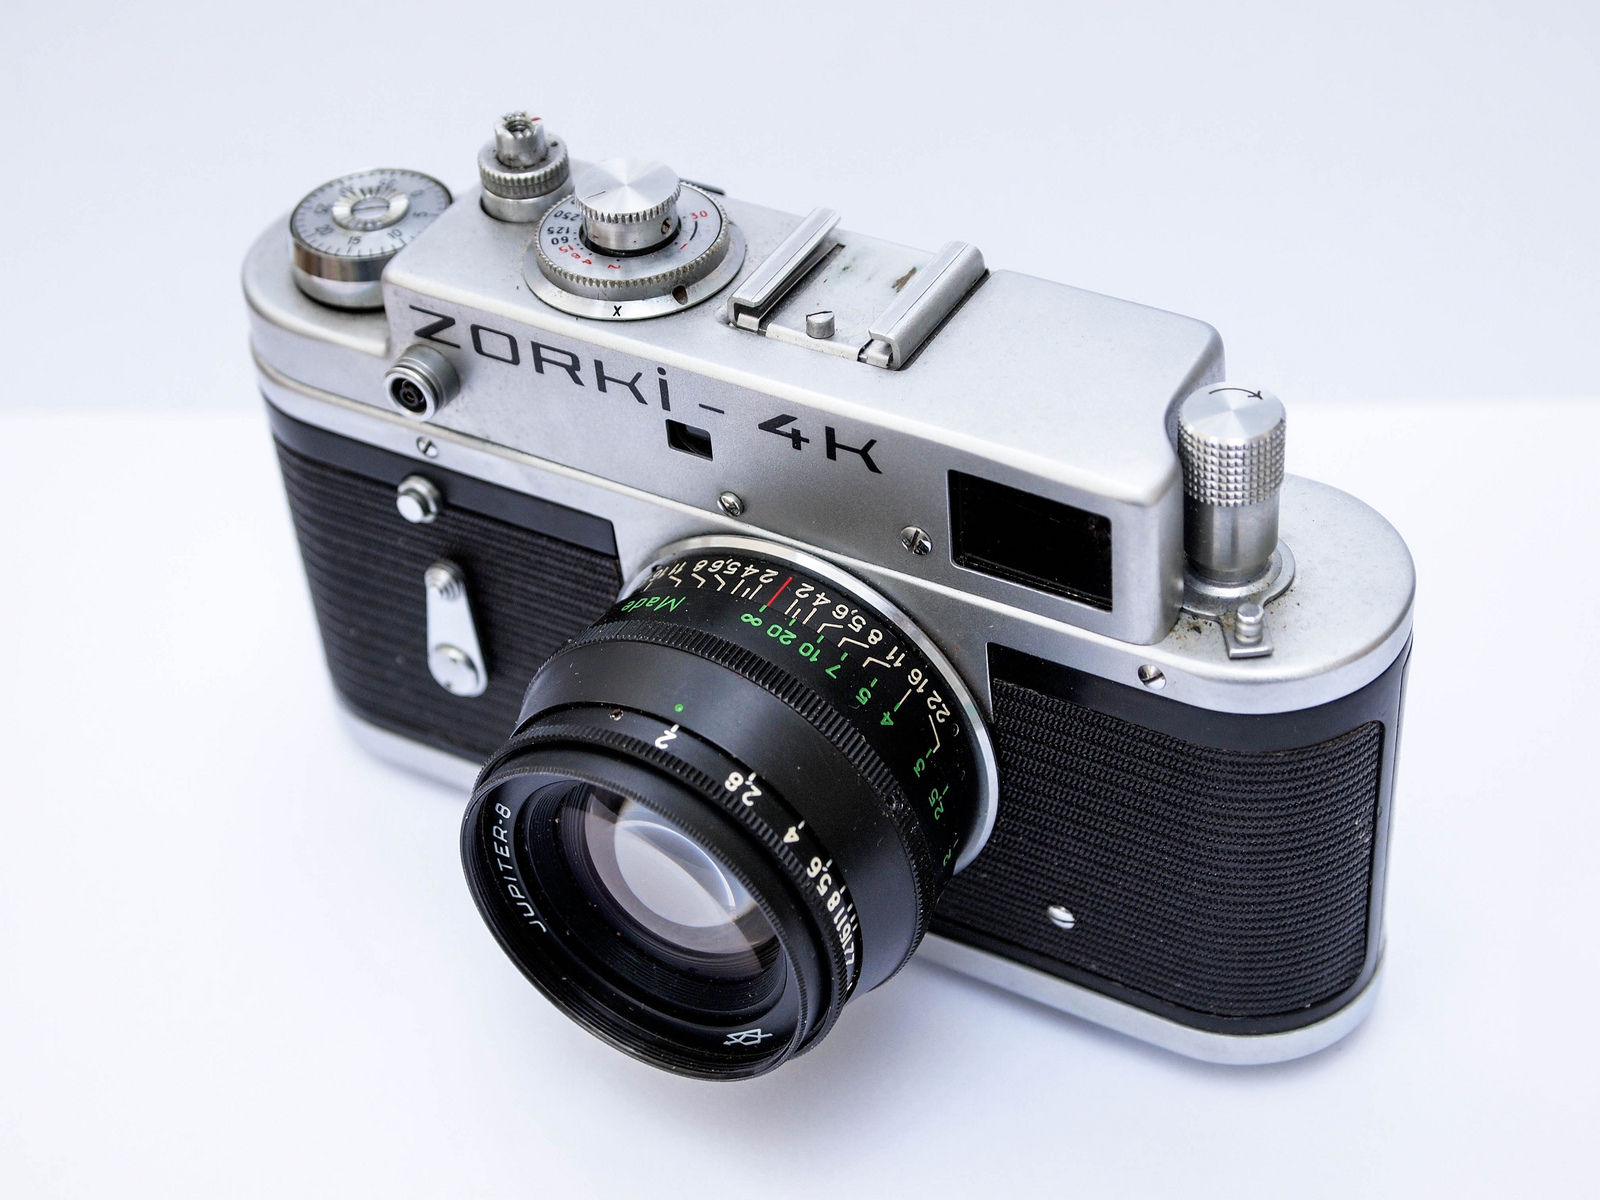 Zorki 4k 35mm film photo camera